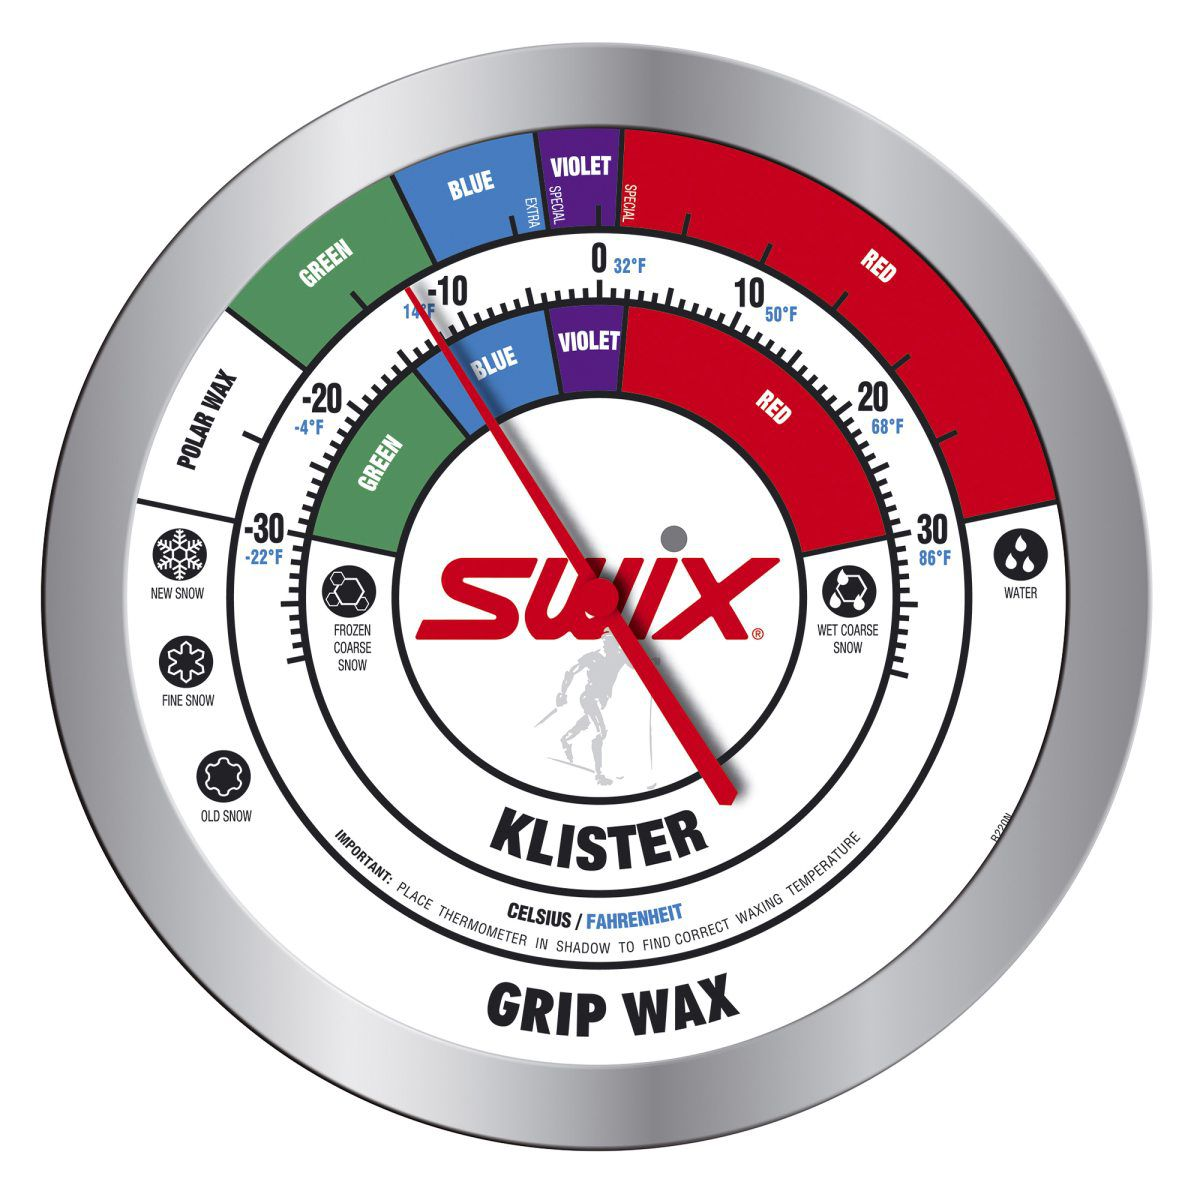 Swix R0220N Round Wall thermometer